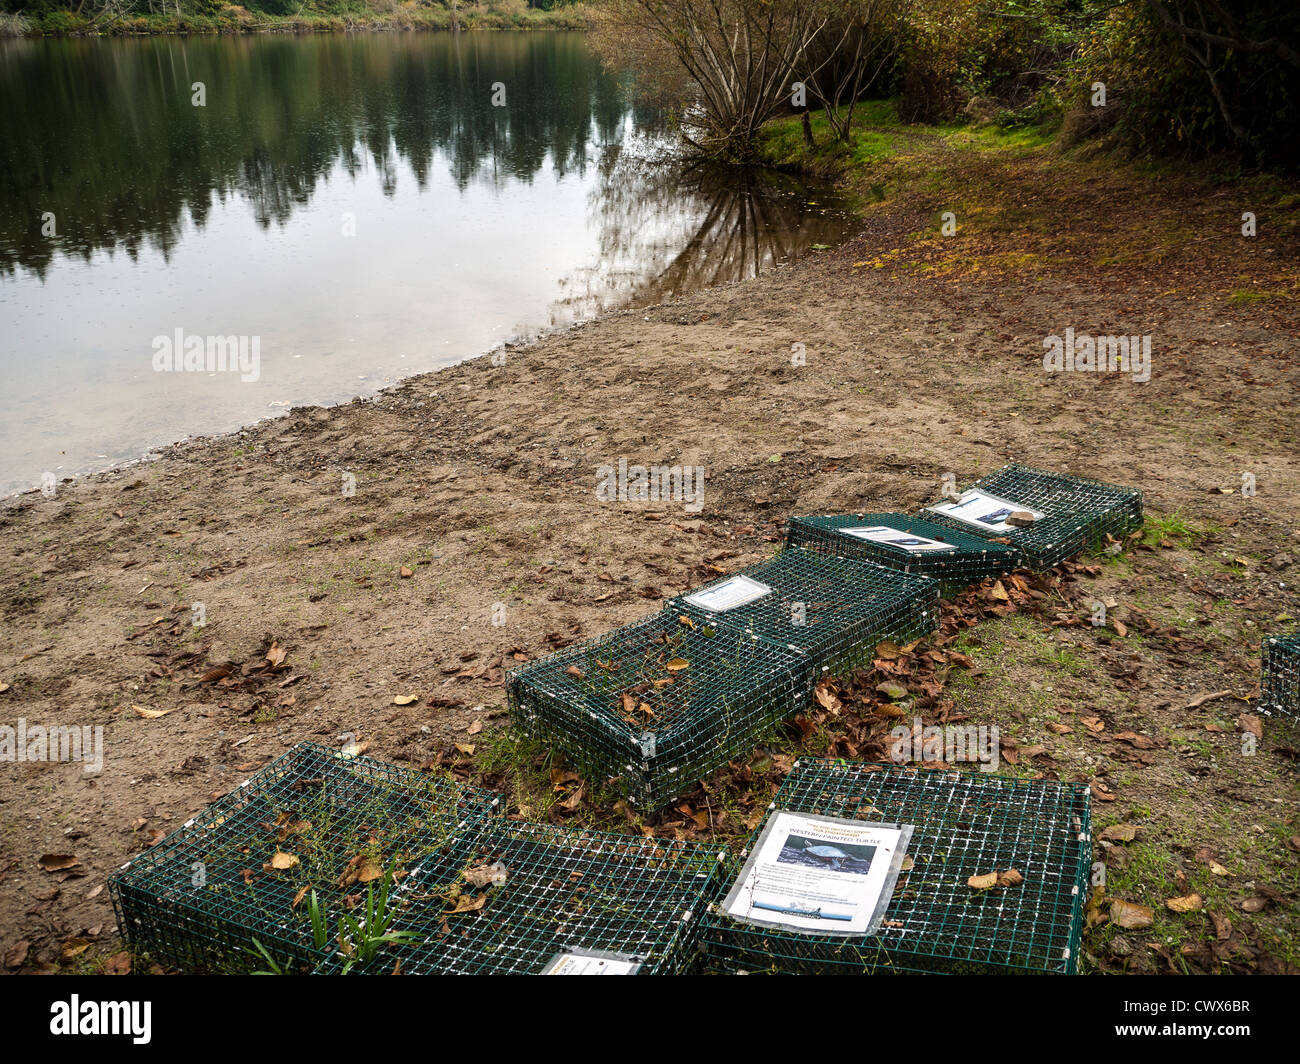 Crates protecting nest sites of Western Painted Turtles at Stowell Lake, Salt Spring Island, Gulf Islands, British - Stock Image